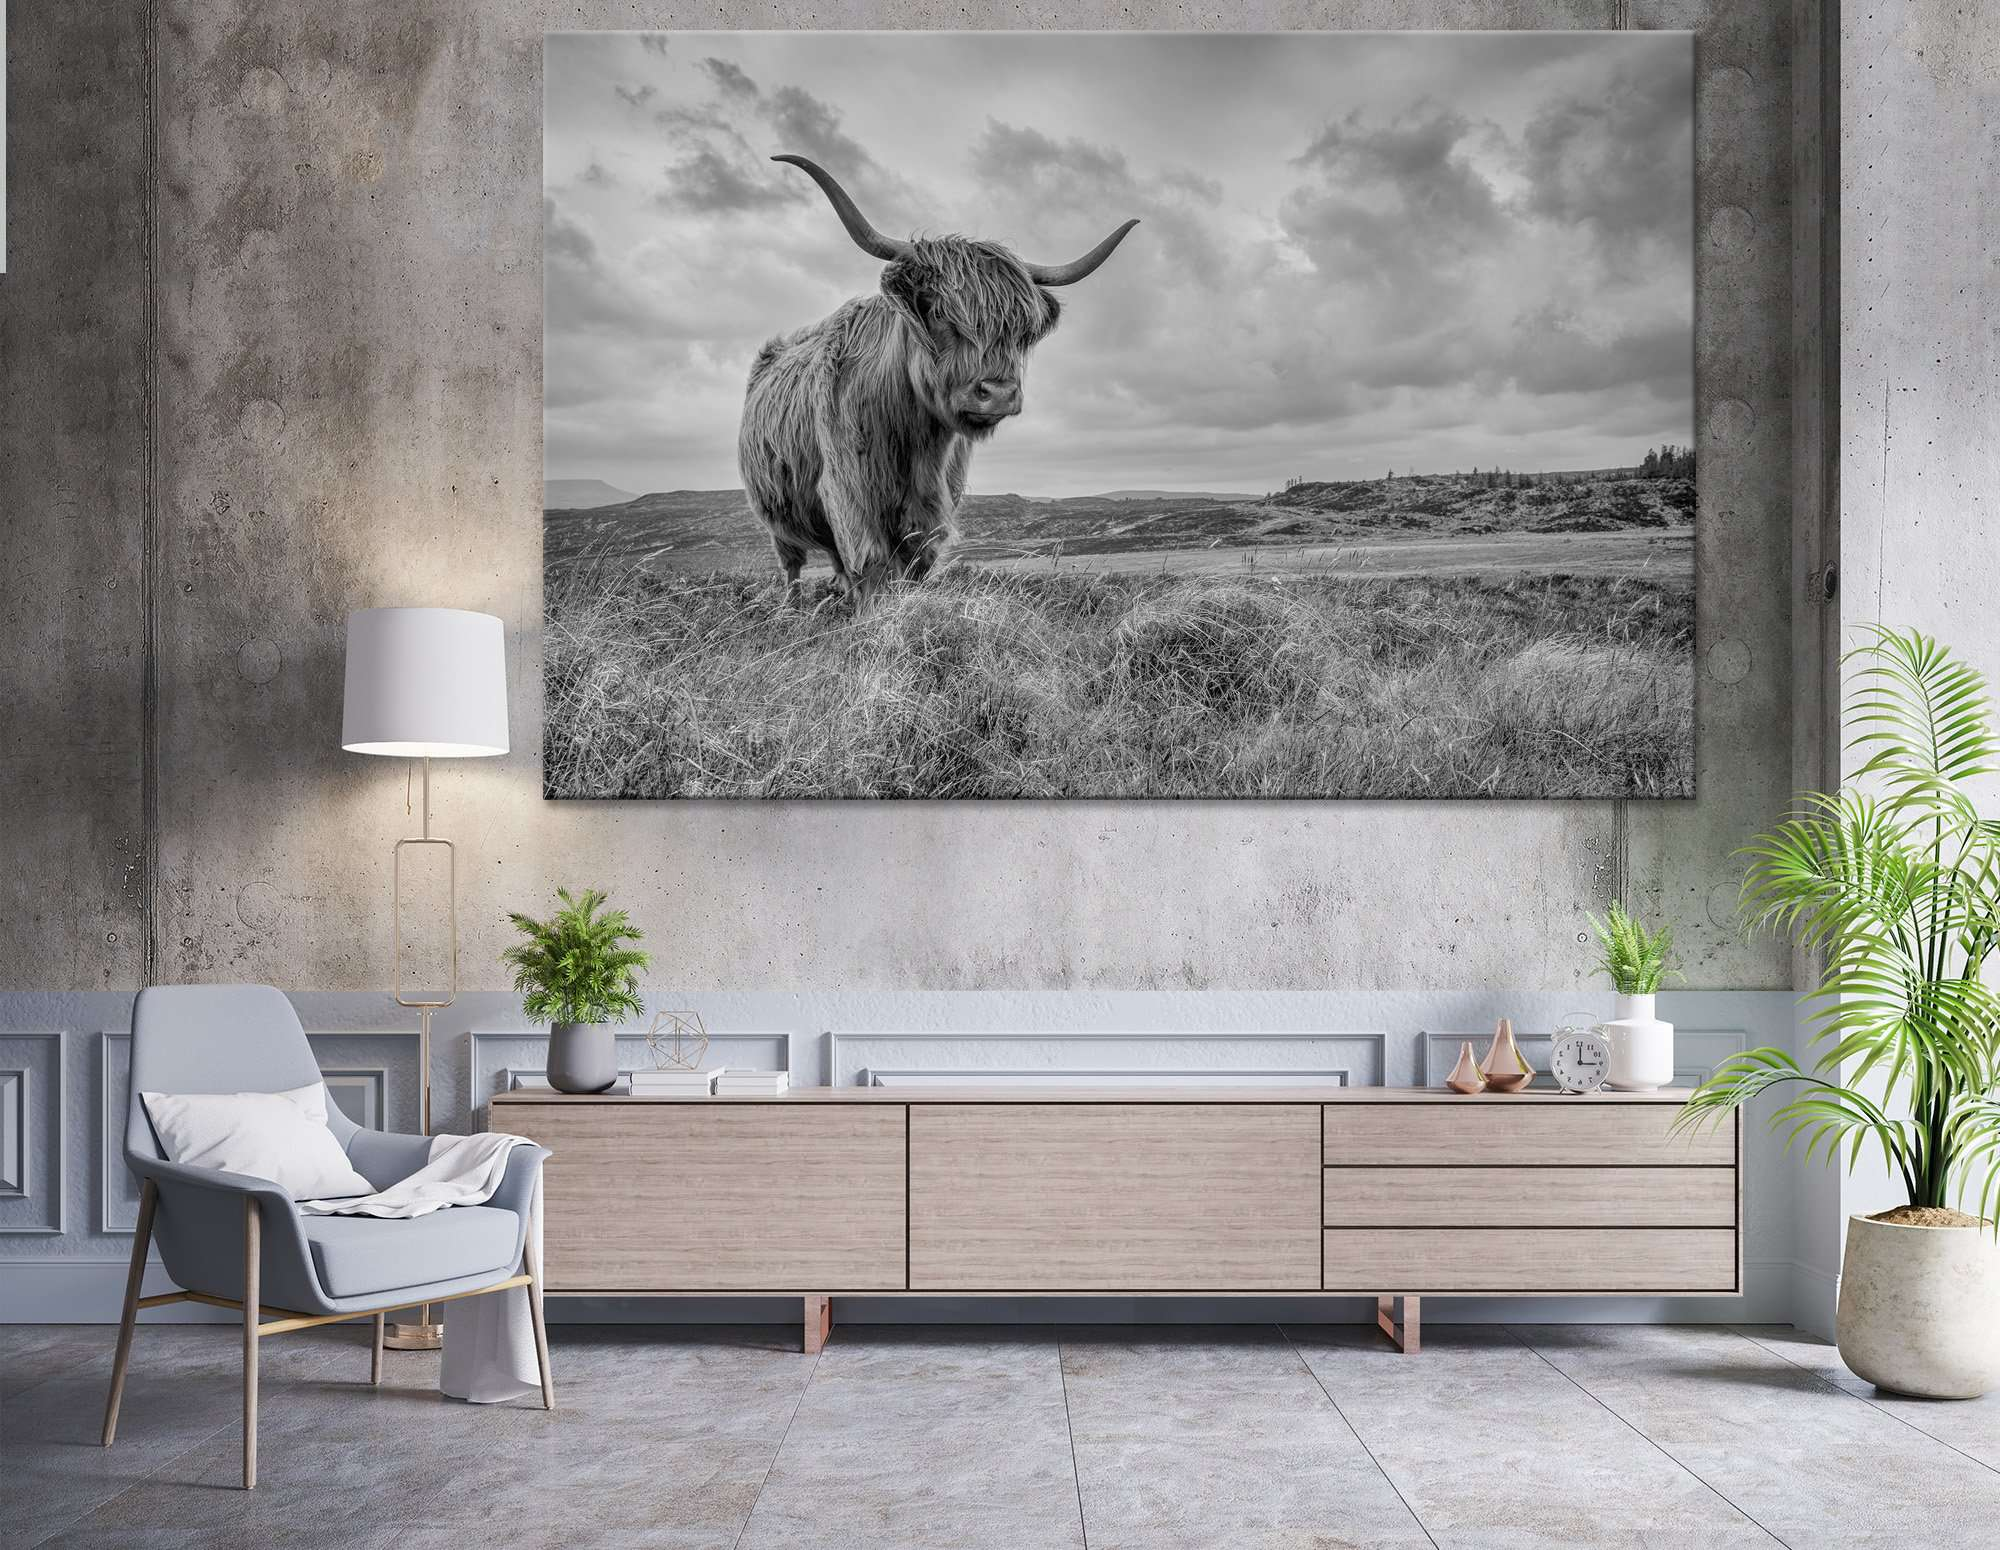 B&W Highland Cow №04125 Ready to Hang Canvas Print